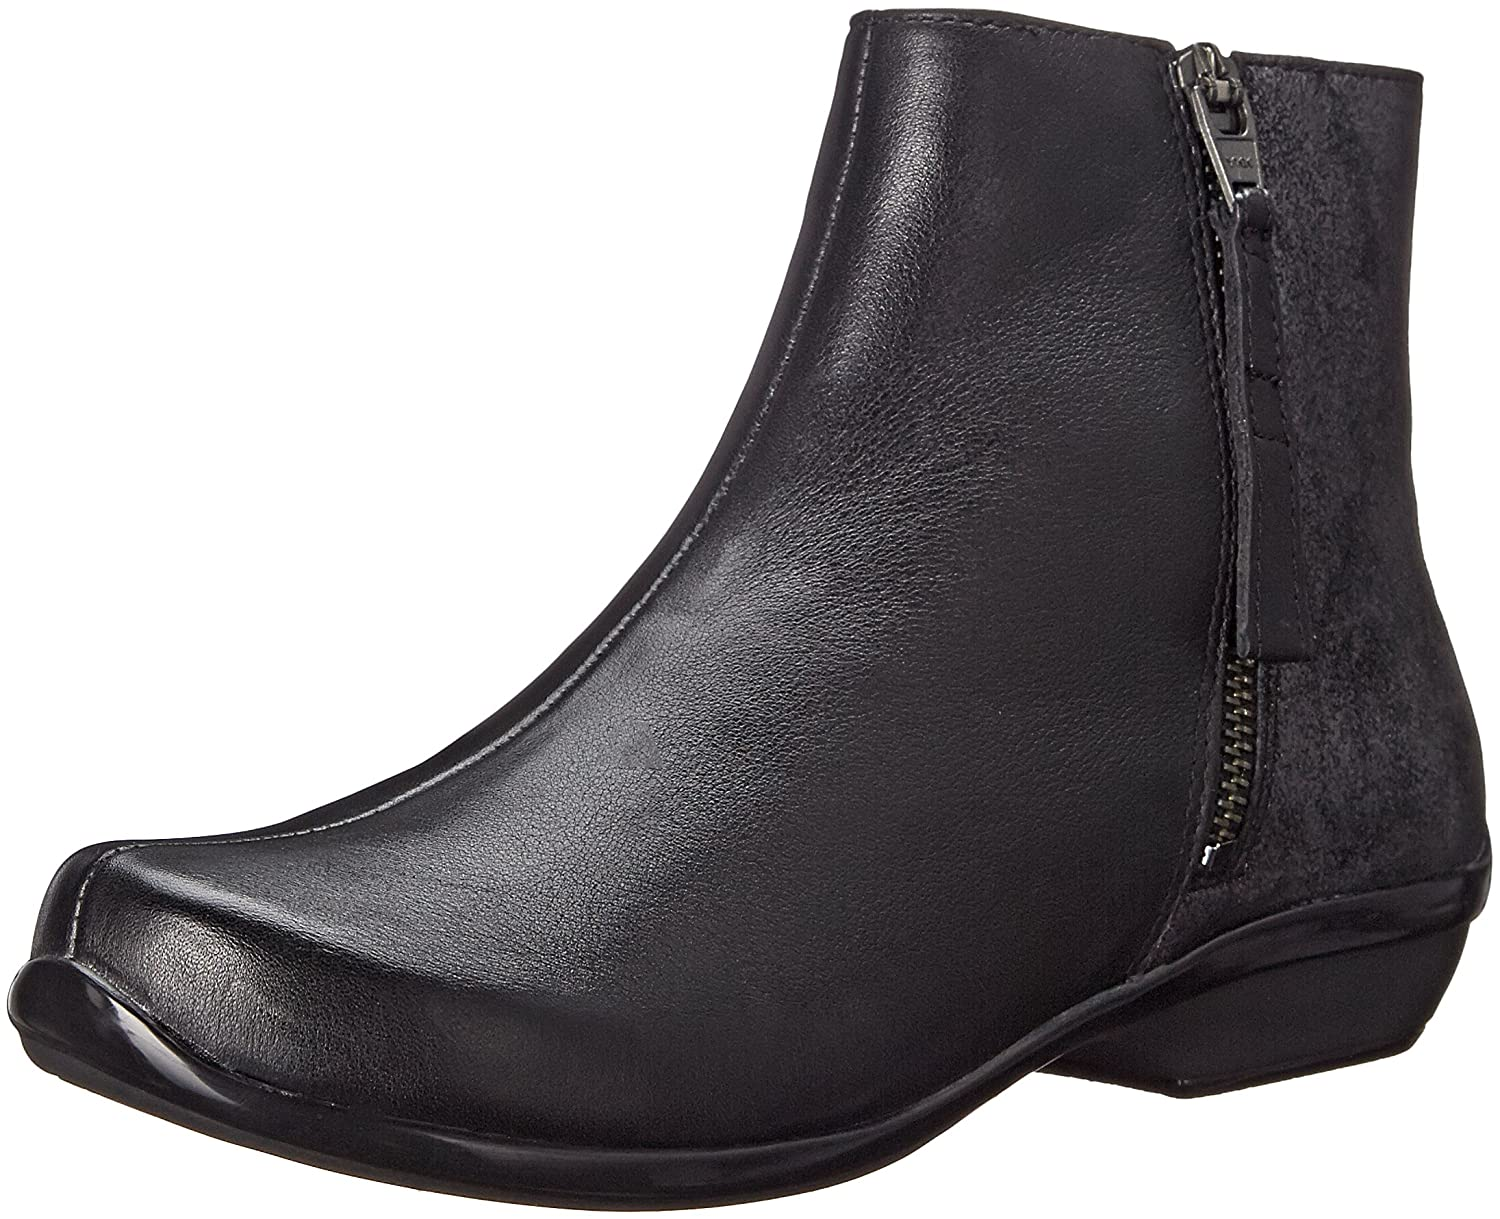 Dansko Women's Otis Boot